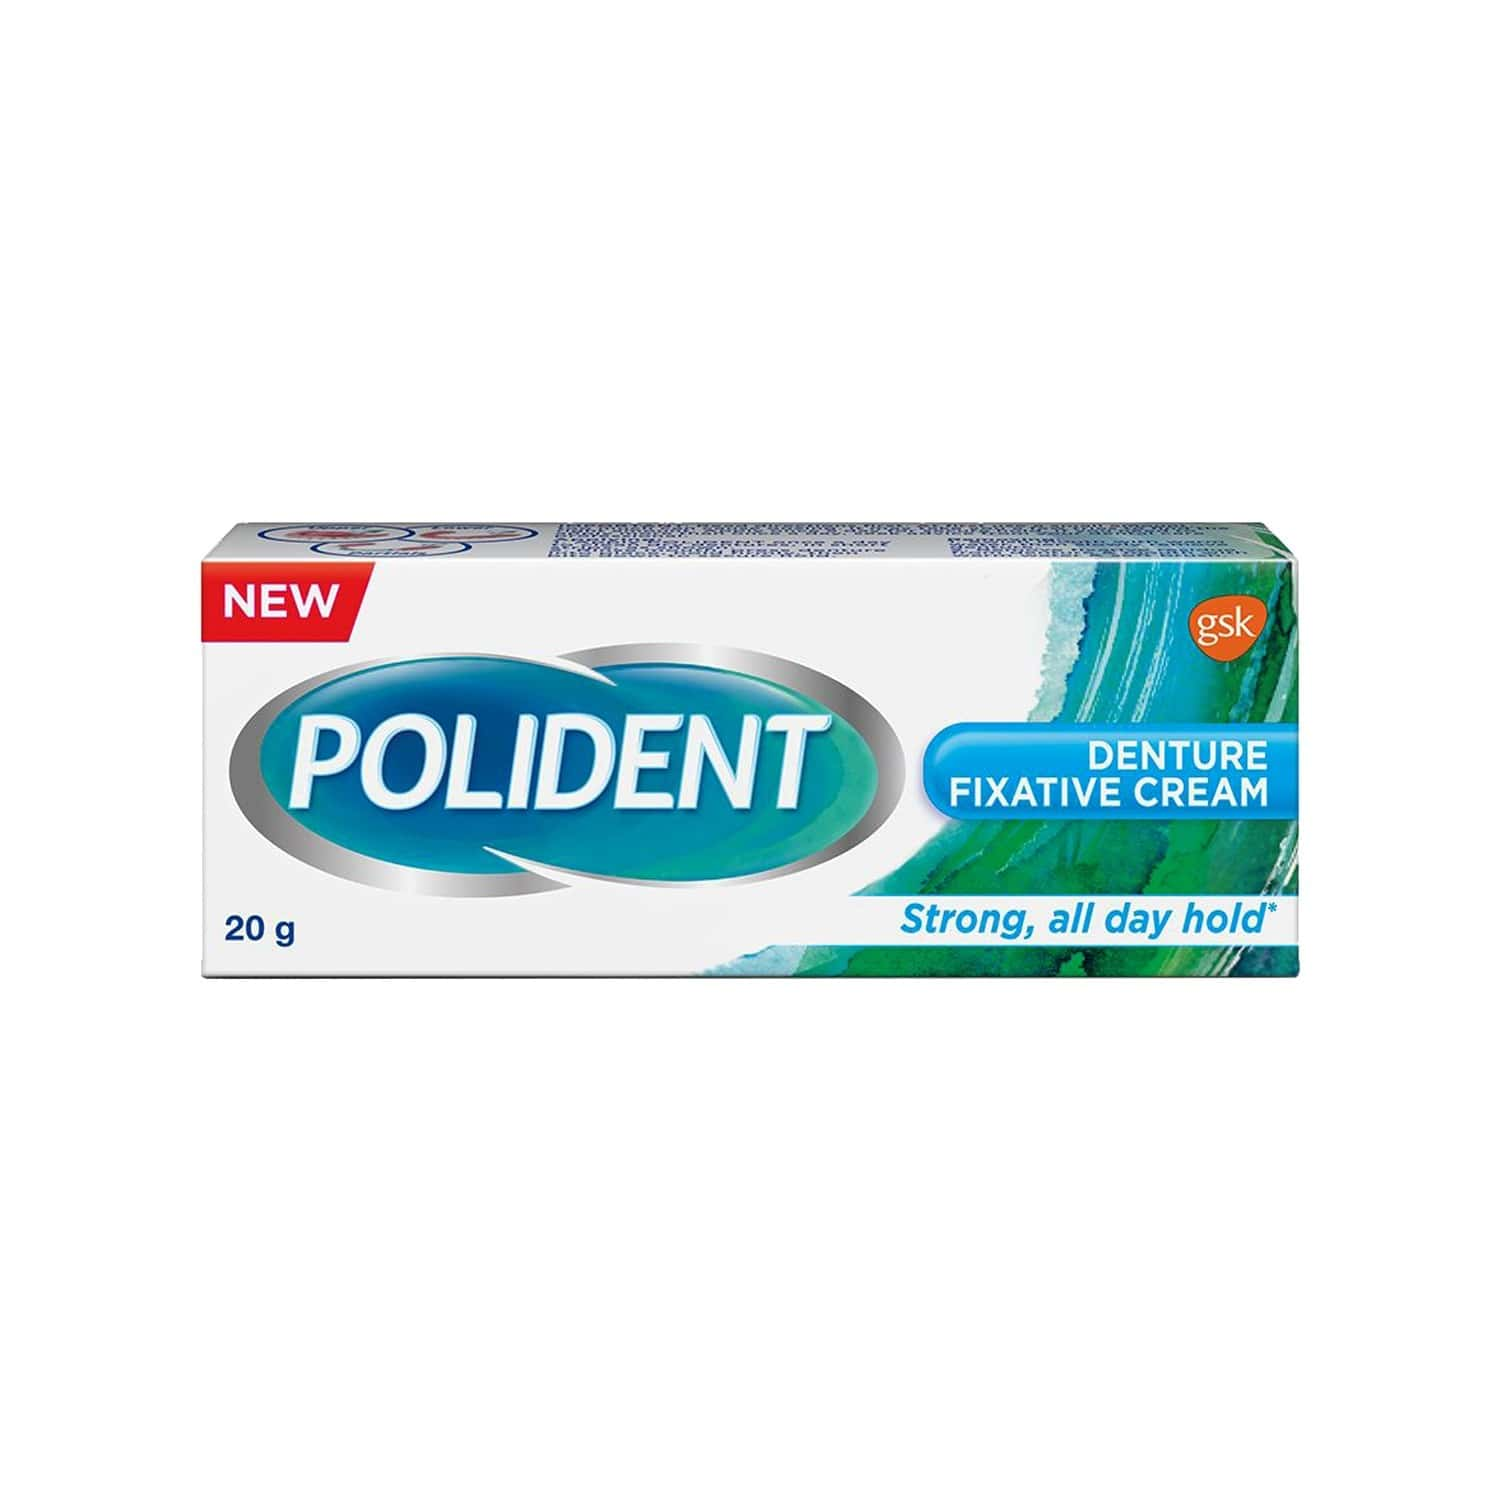 Polident Denture Fixative Cream Denture Adhesive For All Day Hold Of Dentures - 20 G